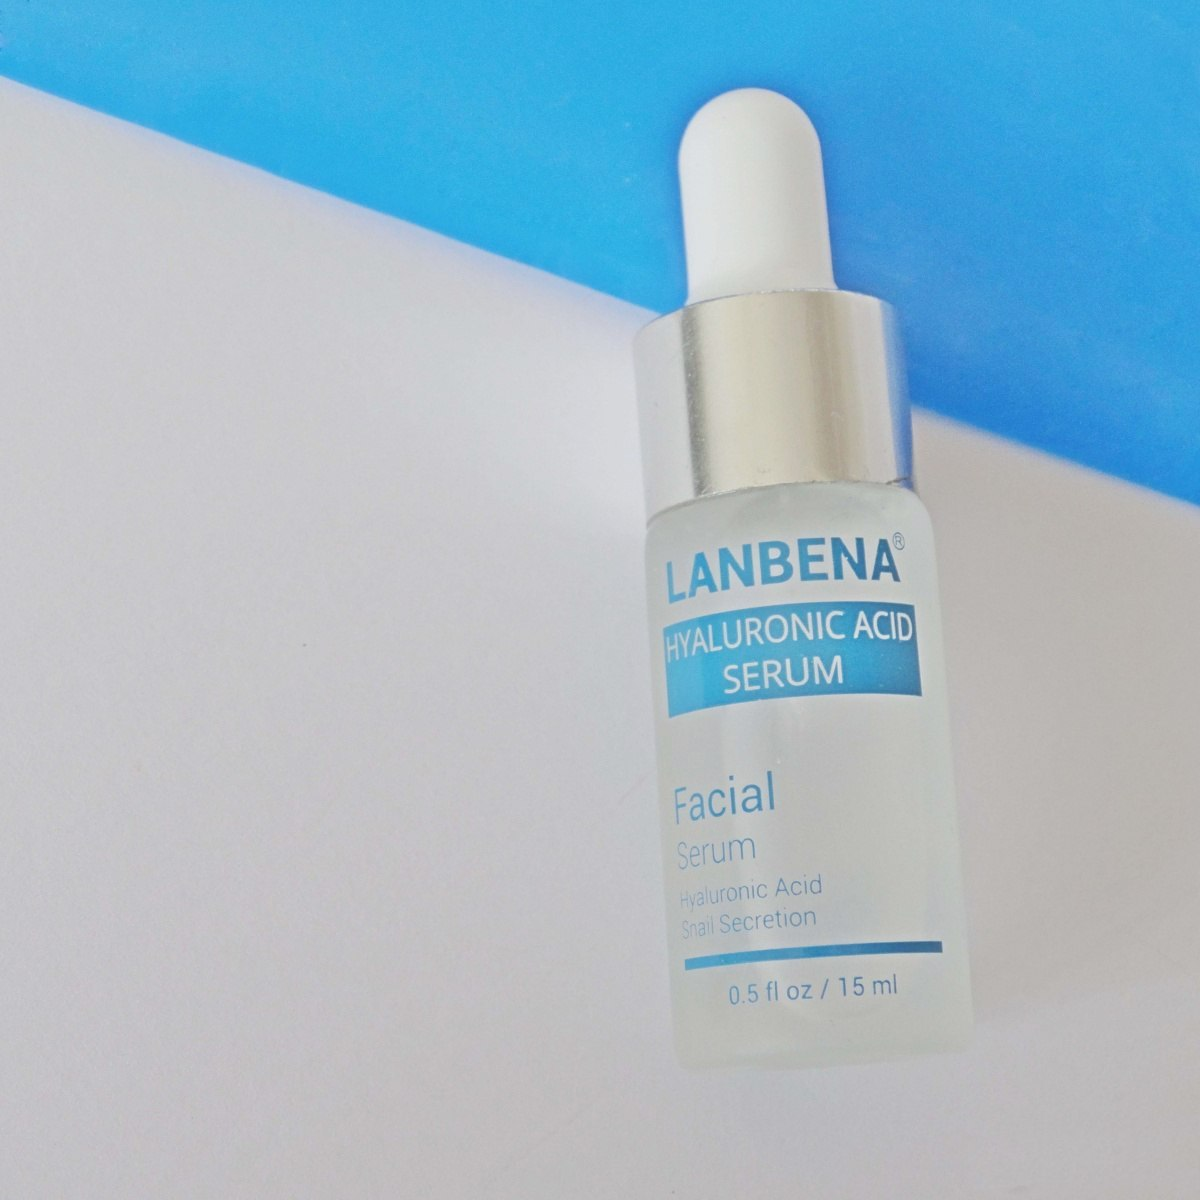 Non-Expensive, and Effective Lanbena Face Serums from Aliexpress - buy